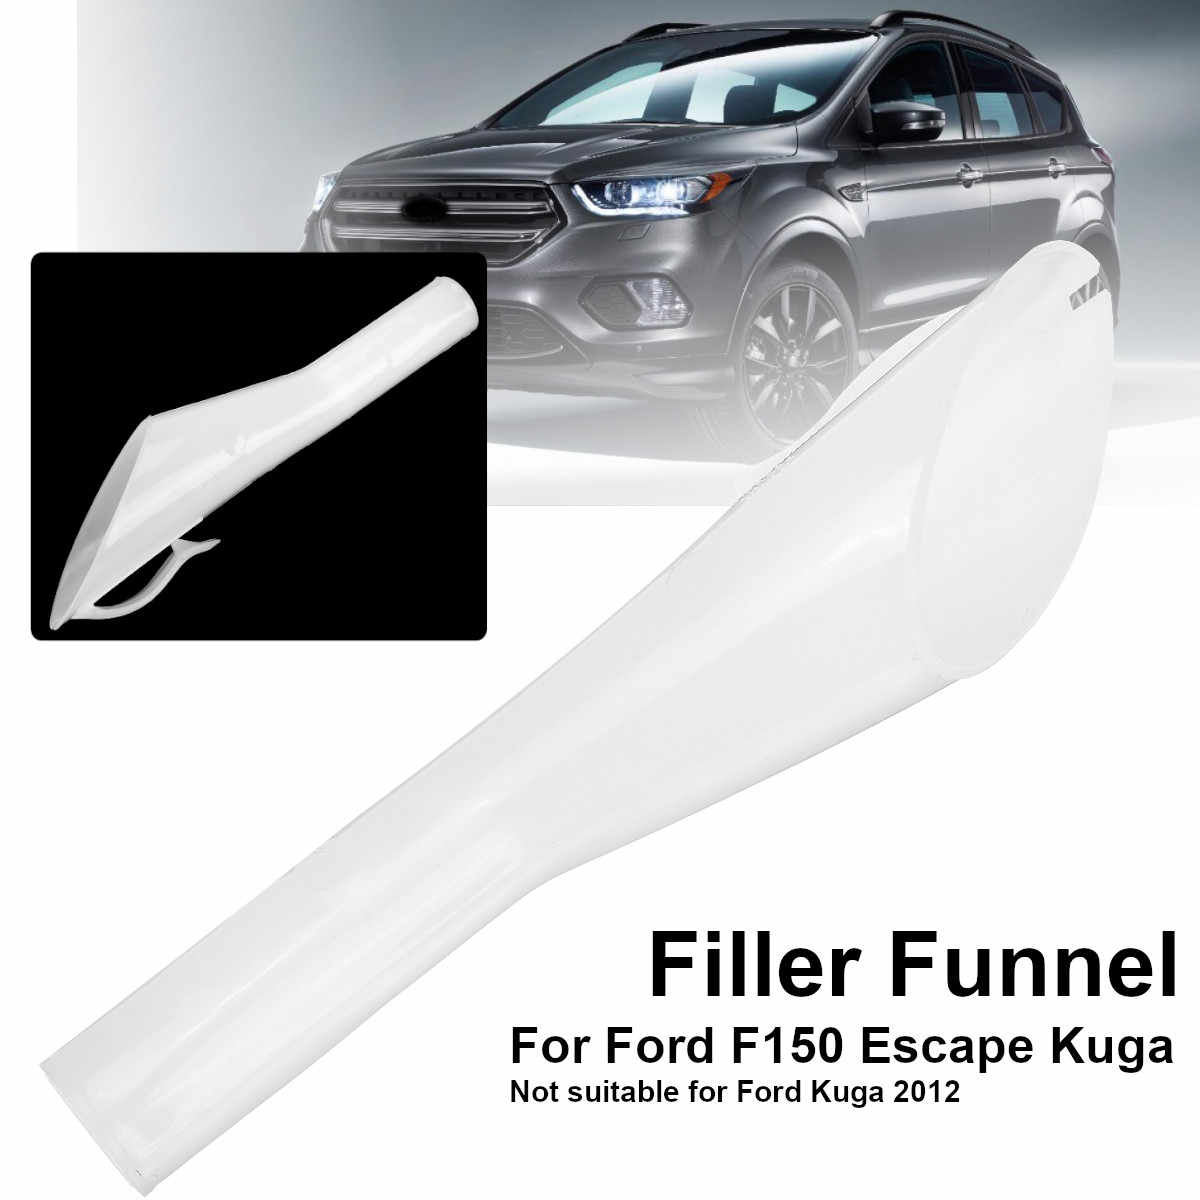 car petrol oil filler funnel fuel refueling tool car fuel filters for ford escape for kuga [ 1200 x 1200 Pixel ]